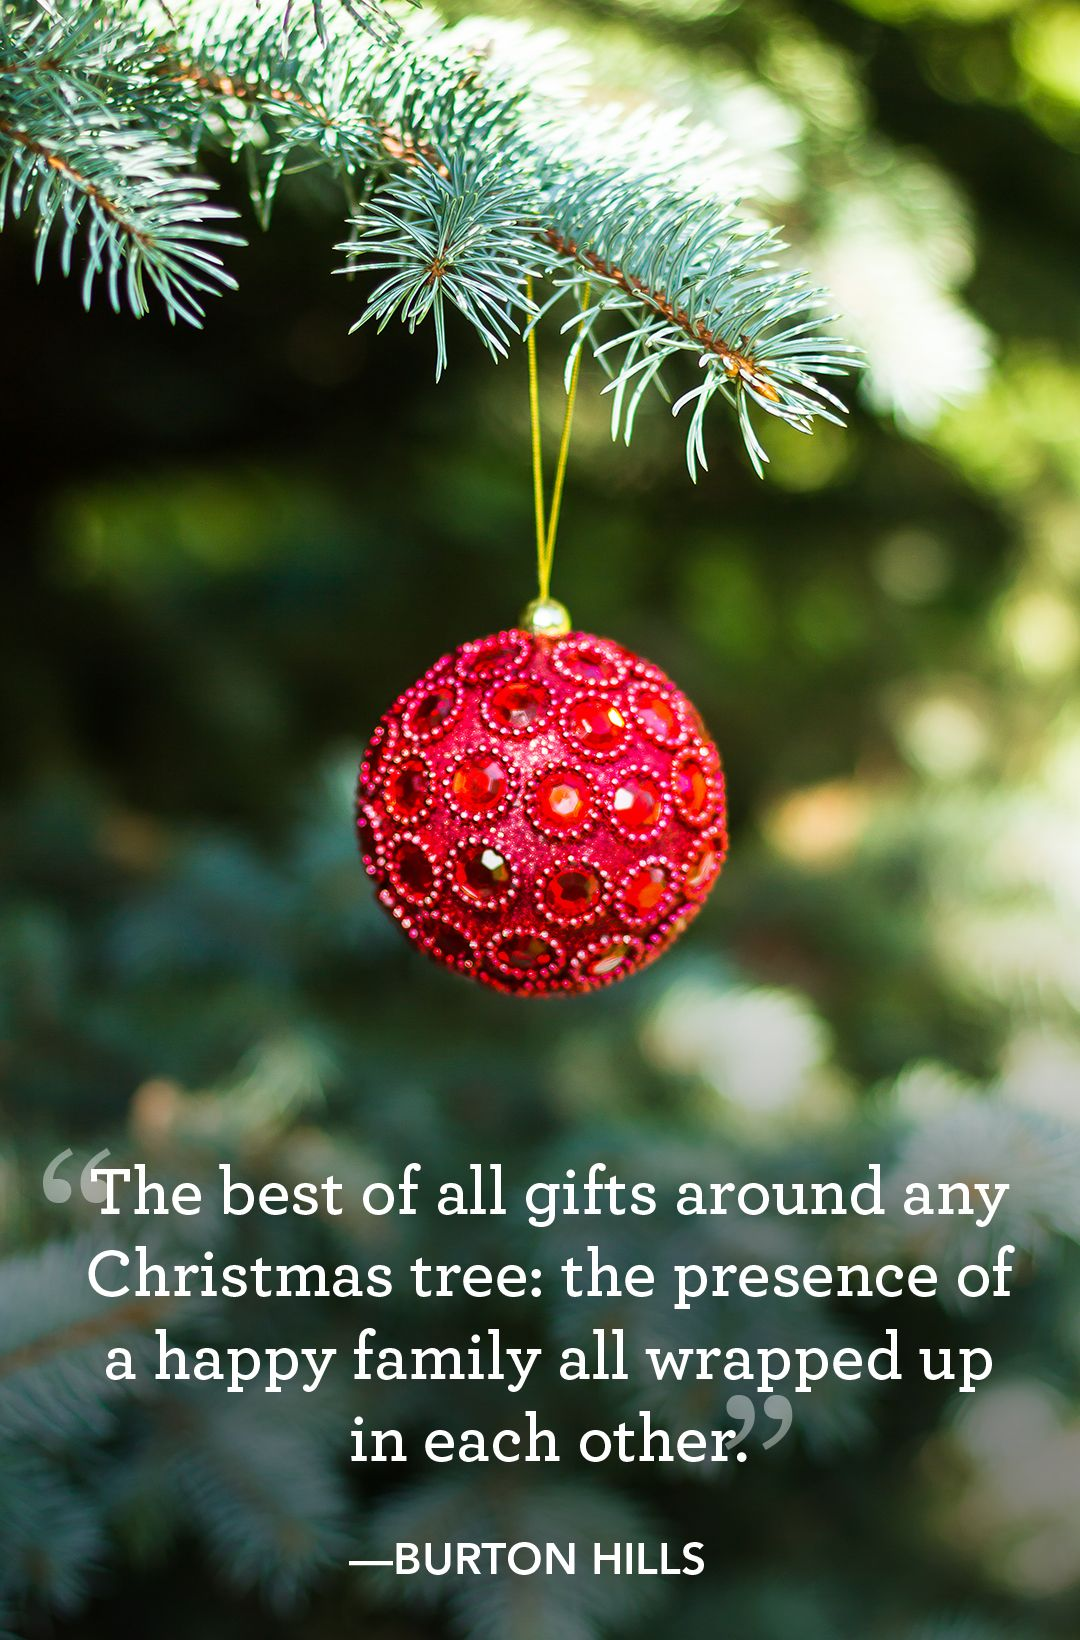 27 Christmas Quotes That Capture The True Meaning Of The Season Christmas Quotes Images Beautiful Christmas Quotes Christmas Messages